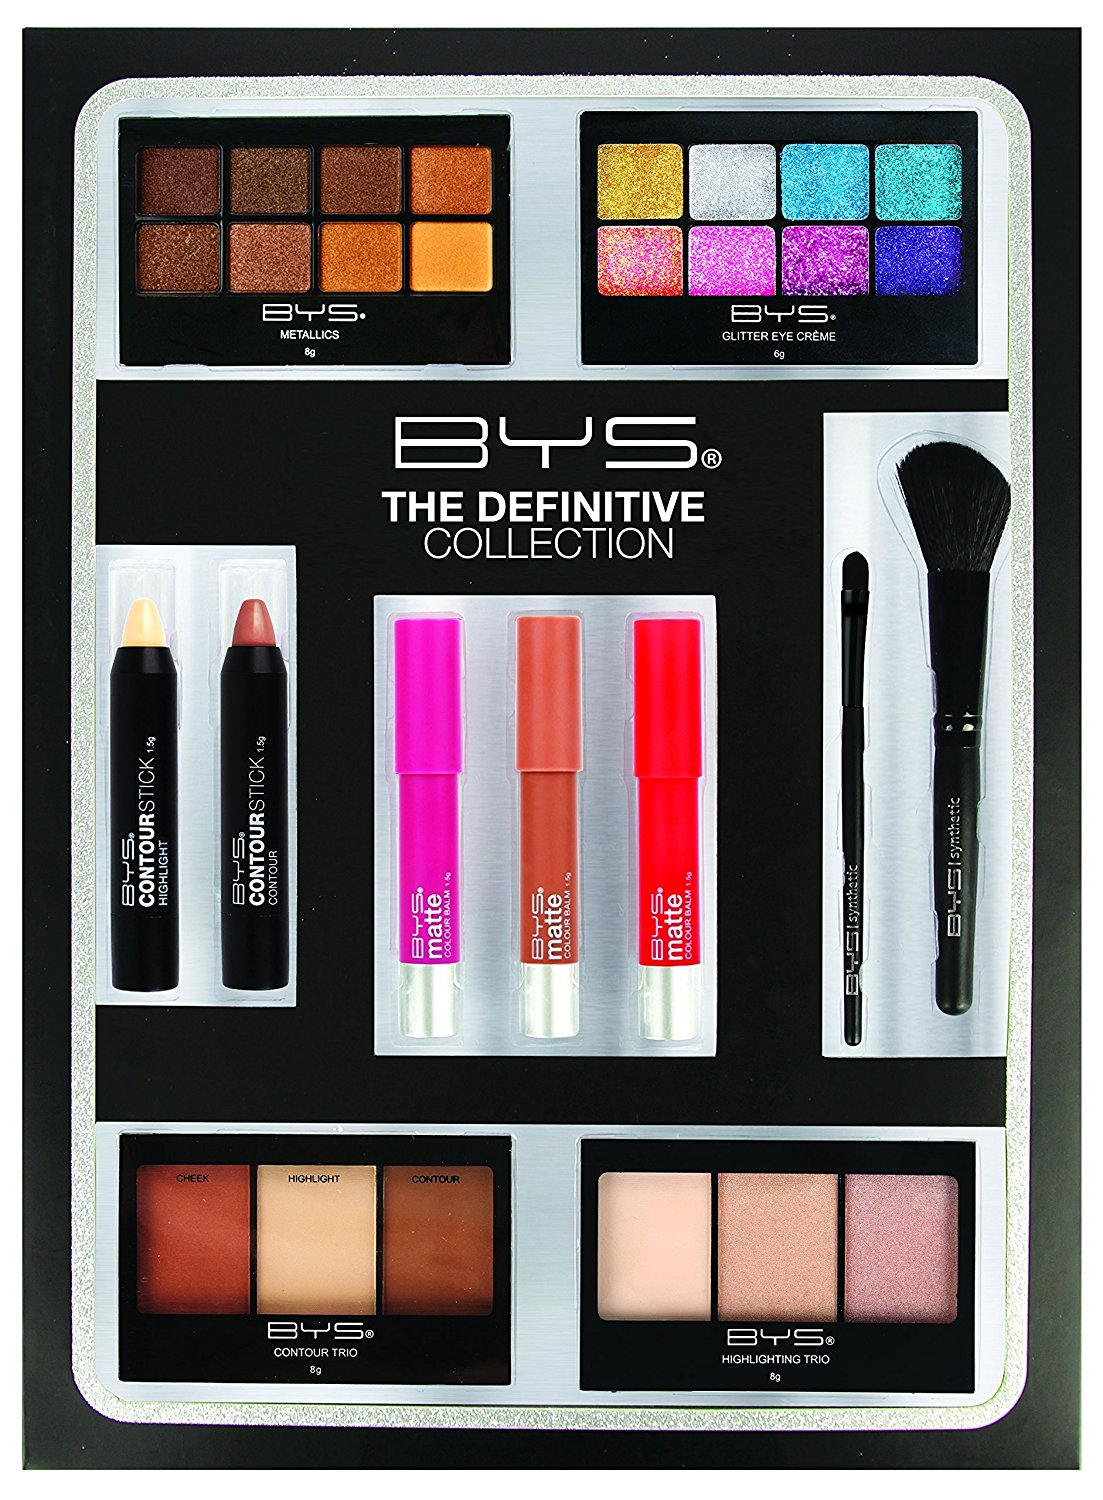 BYS Jumbo Makeup Kit Eyeshadow palette, Glitter Eye Crème palette, Highlight & Contour Sticks, Matte Lip Colors, Eye & Face Brush, Contour & Highlight Palettes, makeup gift set